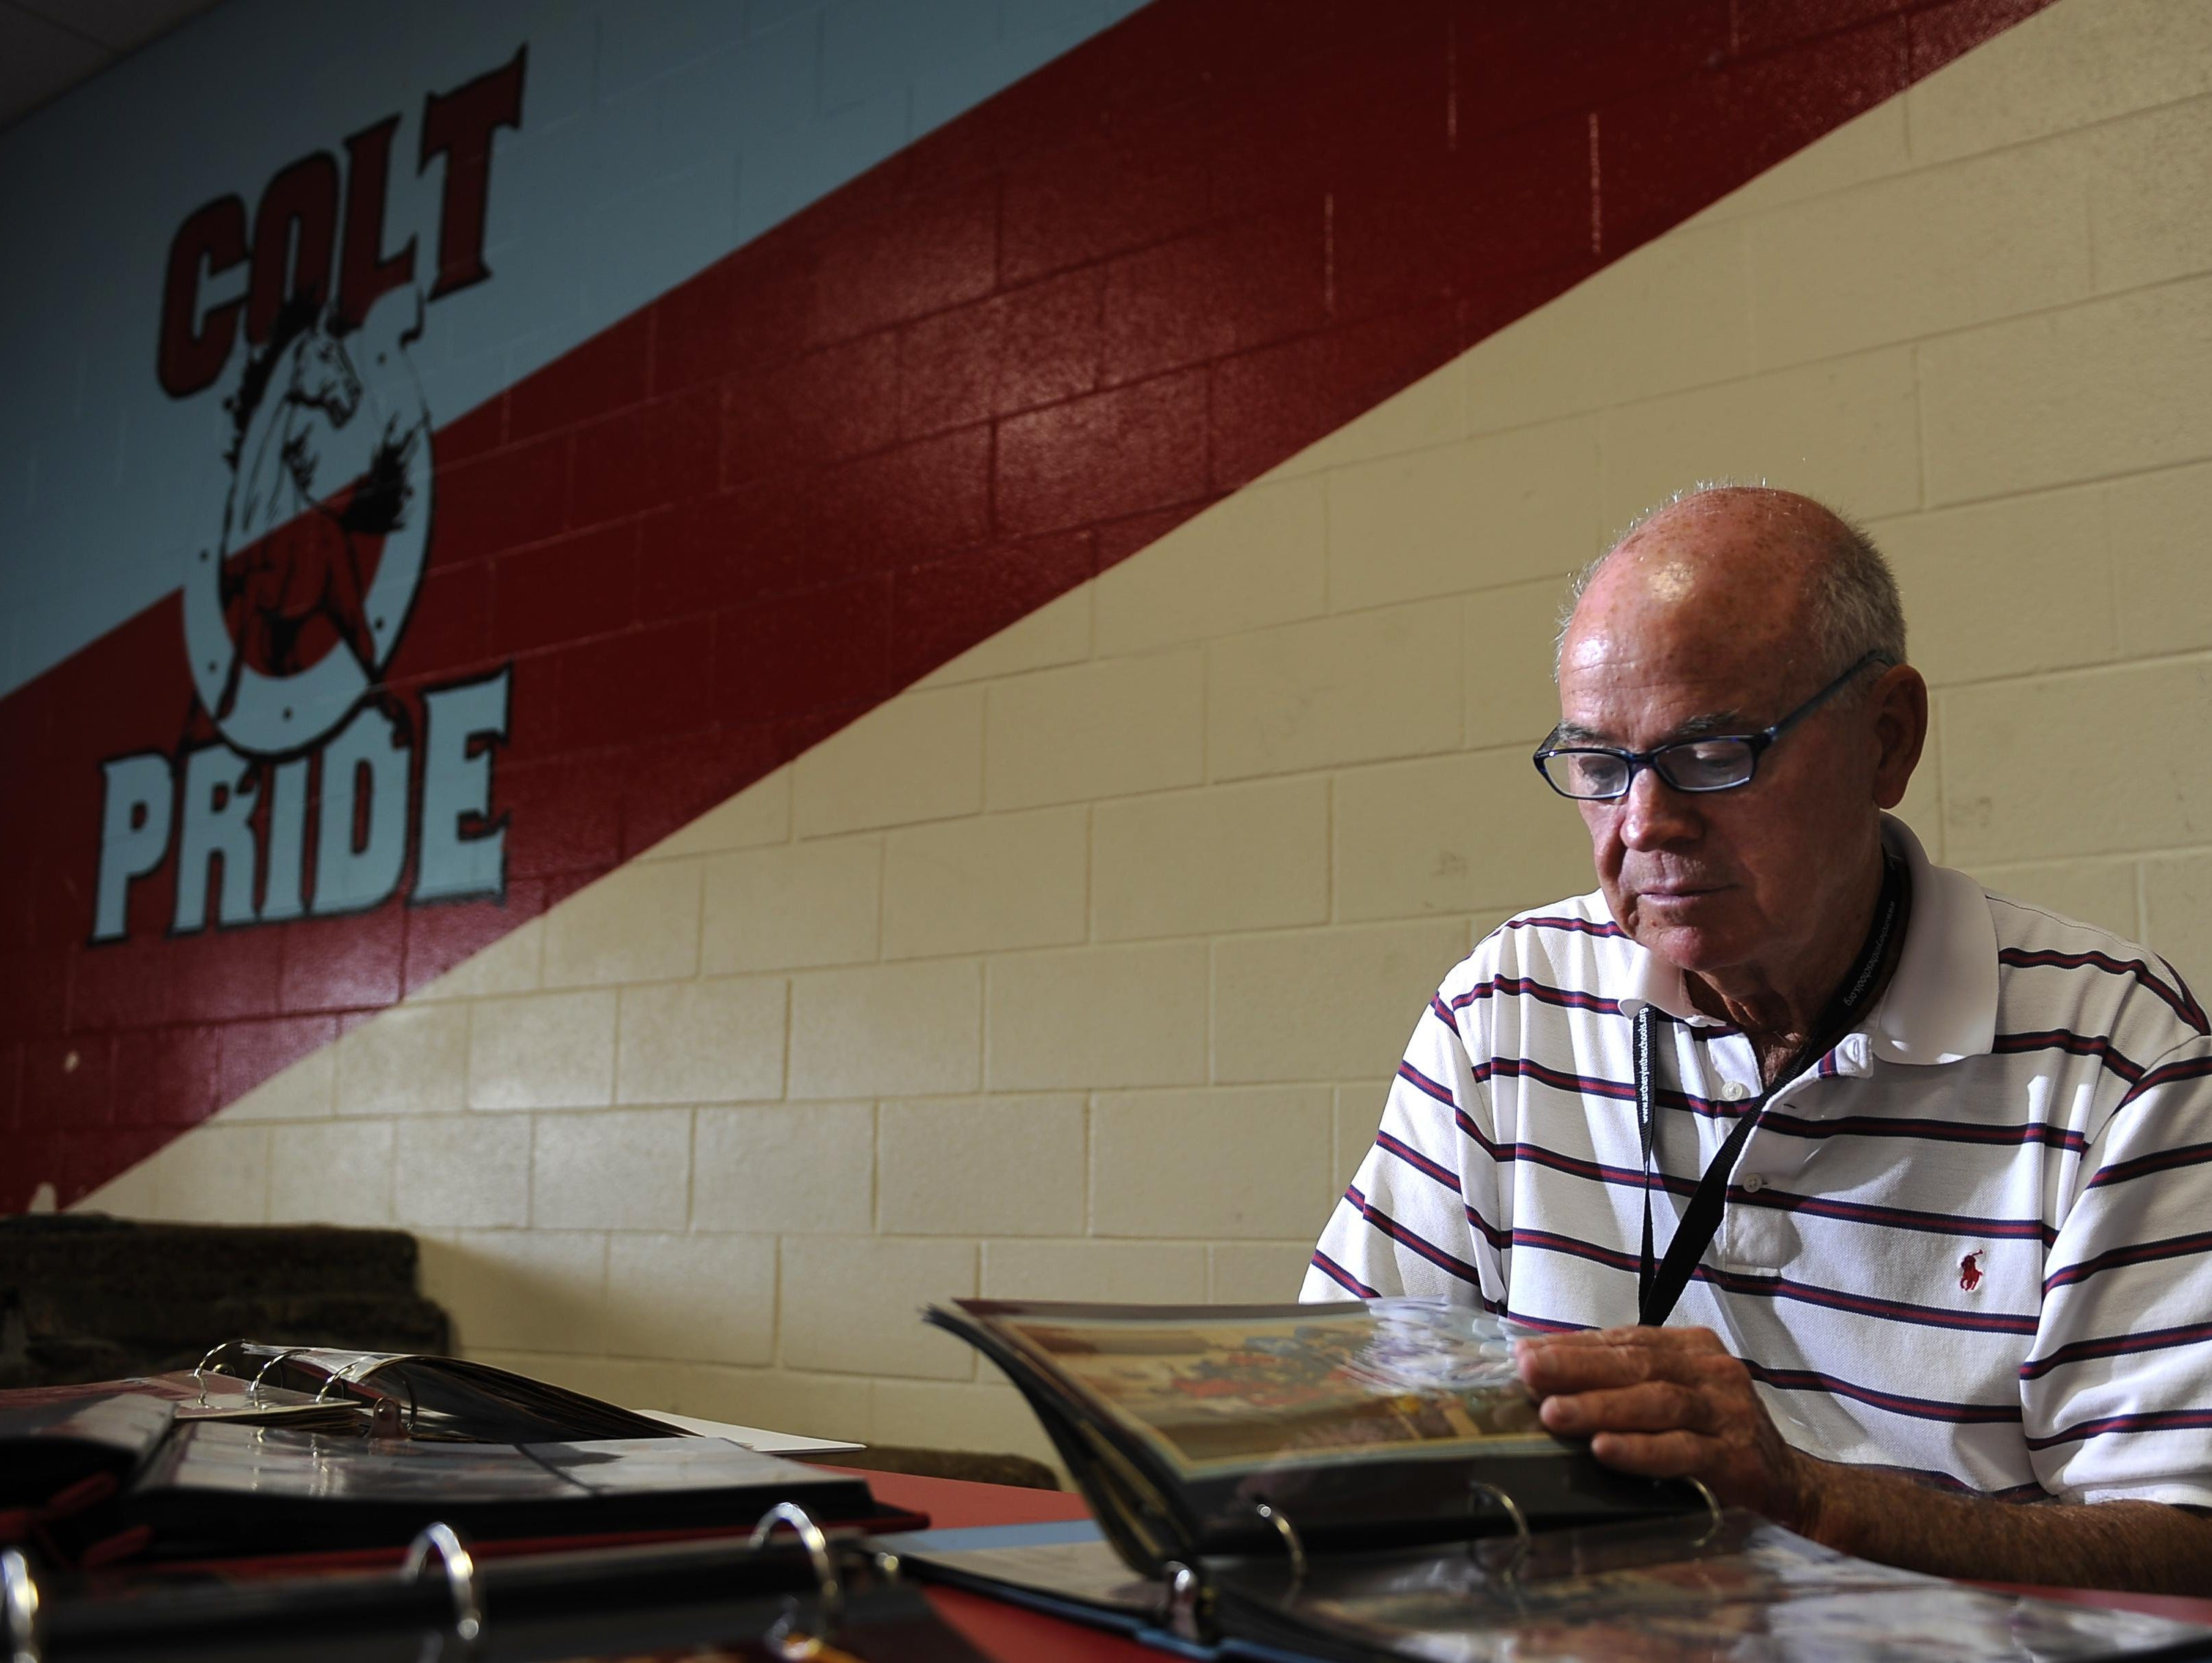 Coach Glenn Falls looks through scrapbooks commemorating his years of coaching in Metro. Falls recently was namedthe girls basketball coach at Martin Luther King. He also coaches volleyball at Glencliff.